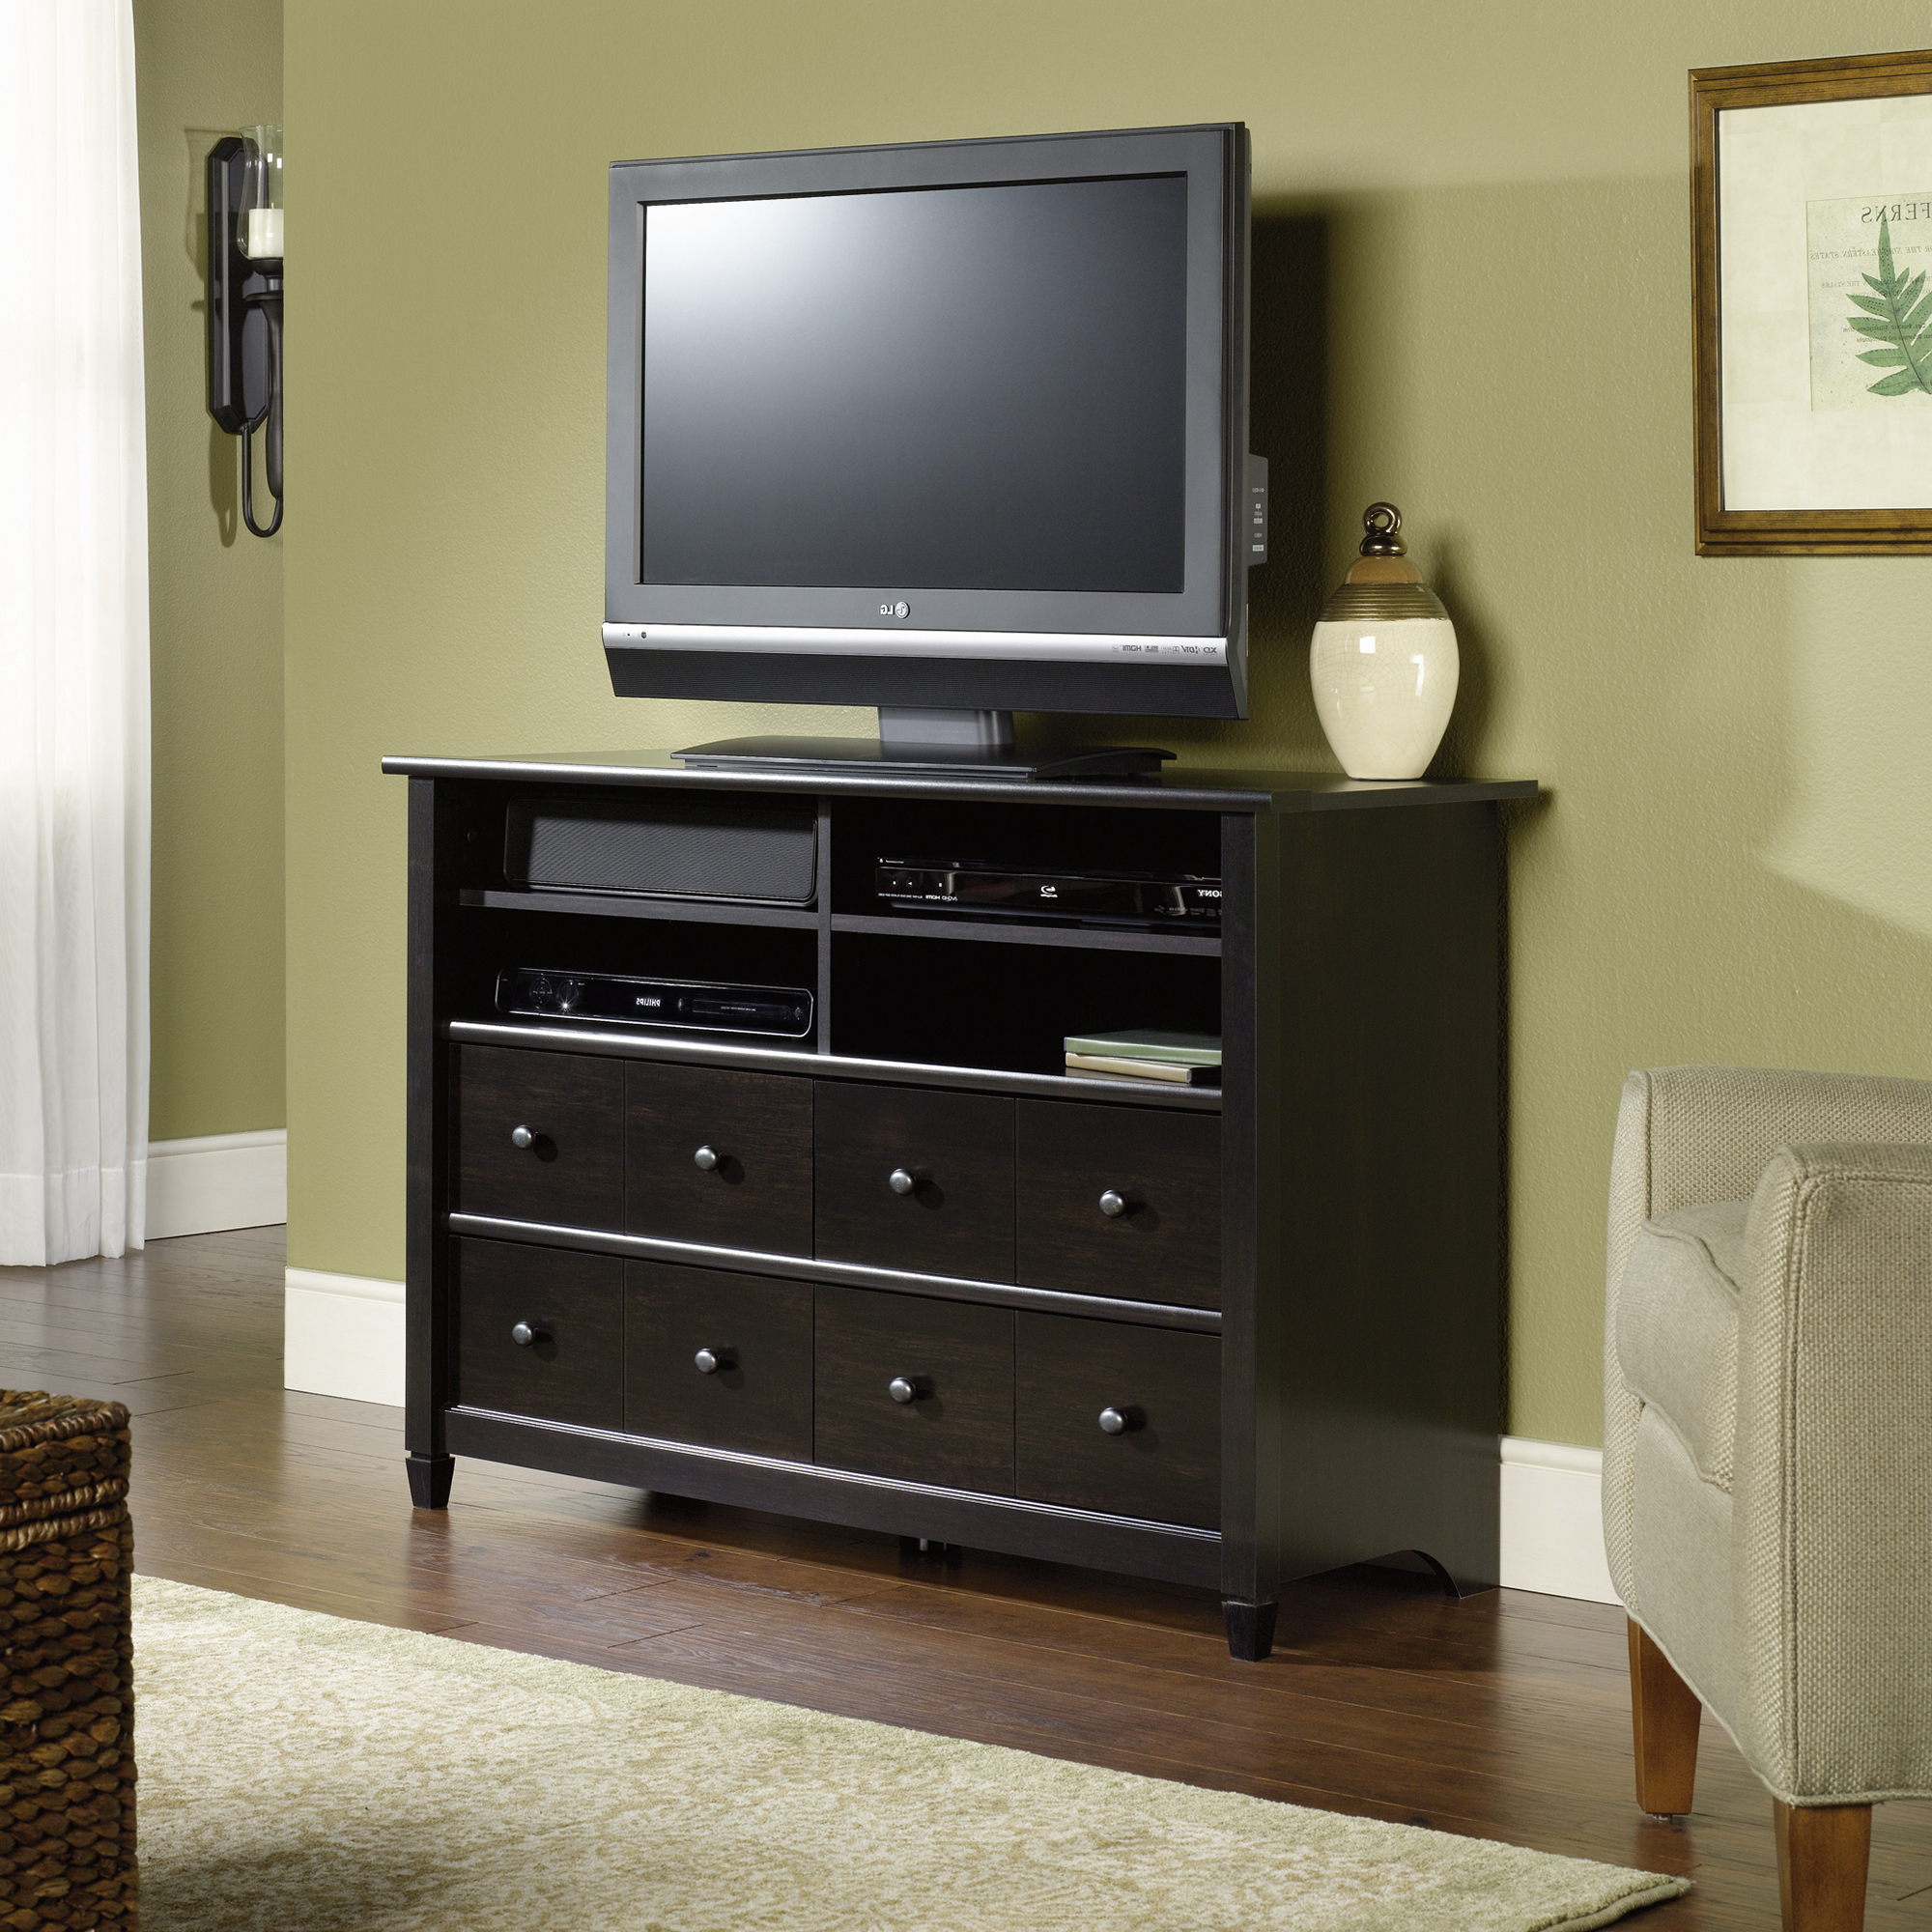 40 Inch Corner Tv Stand 36 Wide 38 30 High Tall Rca 3 Tier 90 With Current 40 Inch Corner Tv Stands (View 1 of 20)